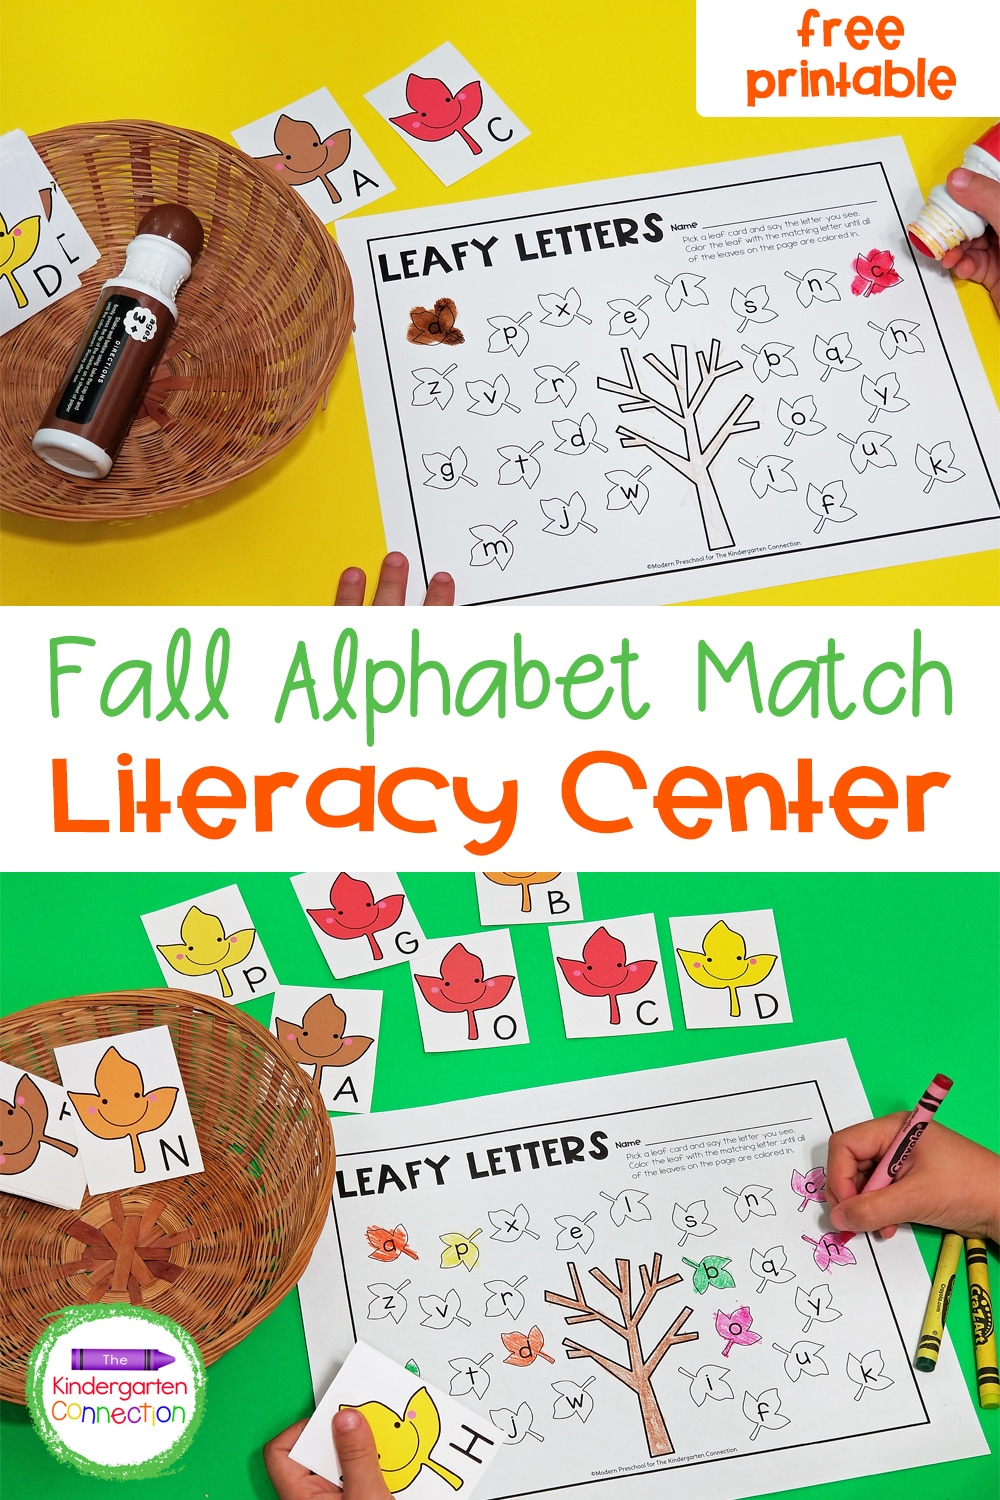 This free Fall Leaf Letter Match will bring some seasonal, alphabet learning fun to your Pre-K and Kindergarten literacy centers!